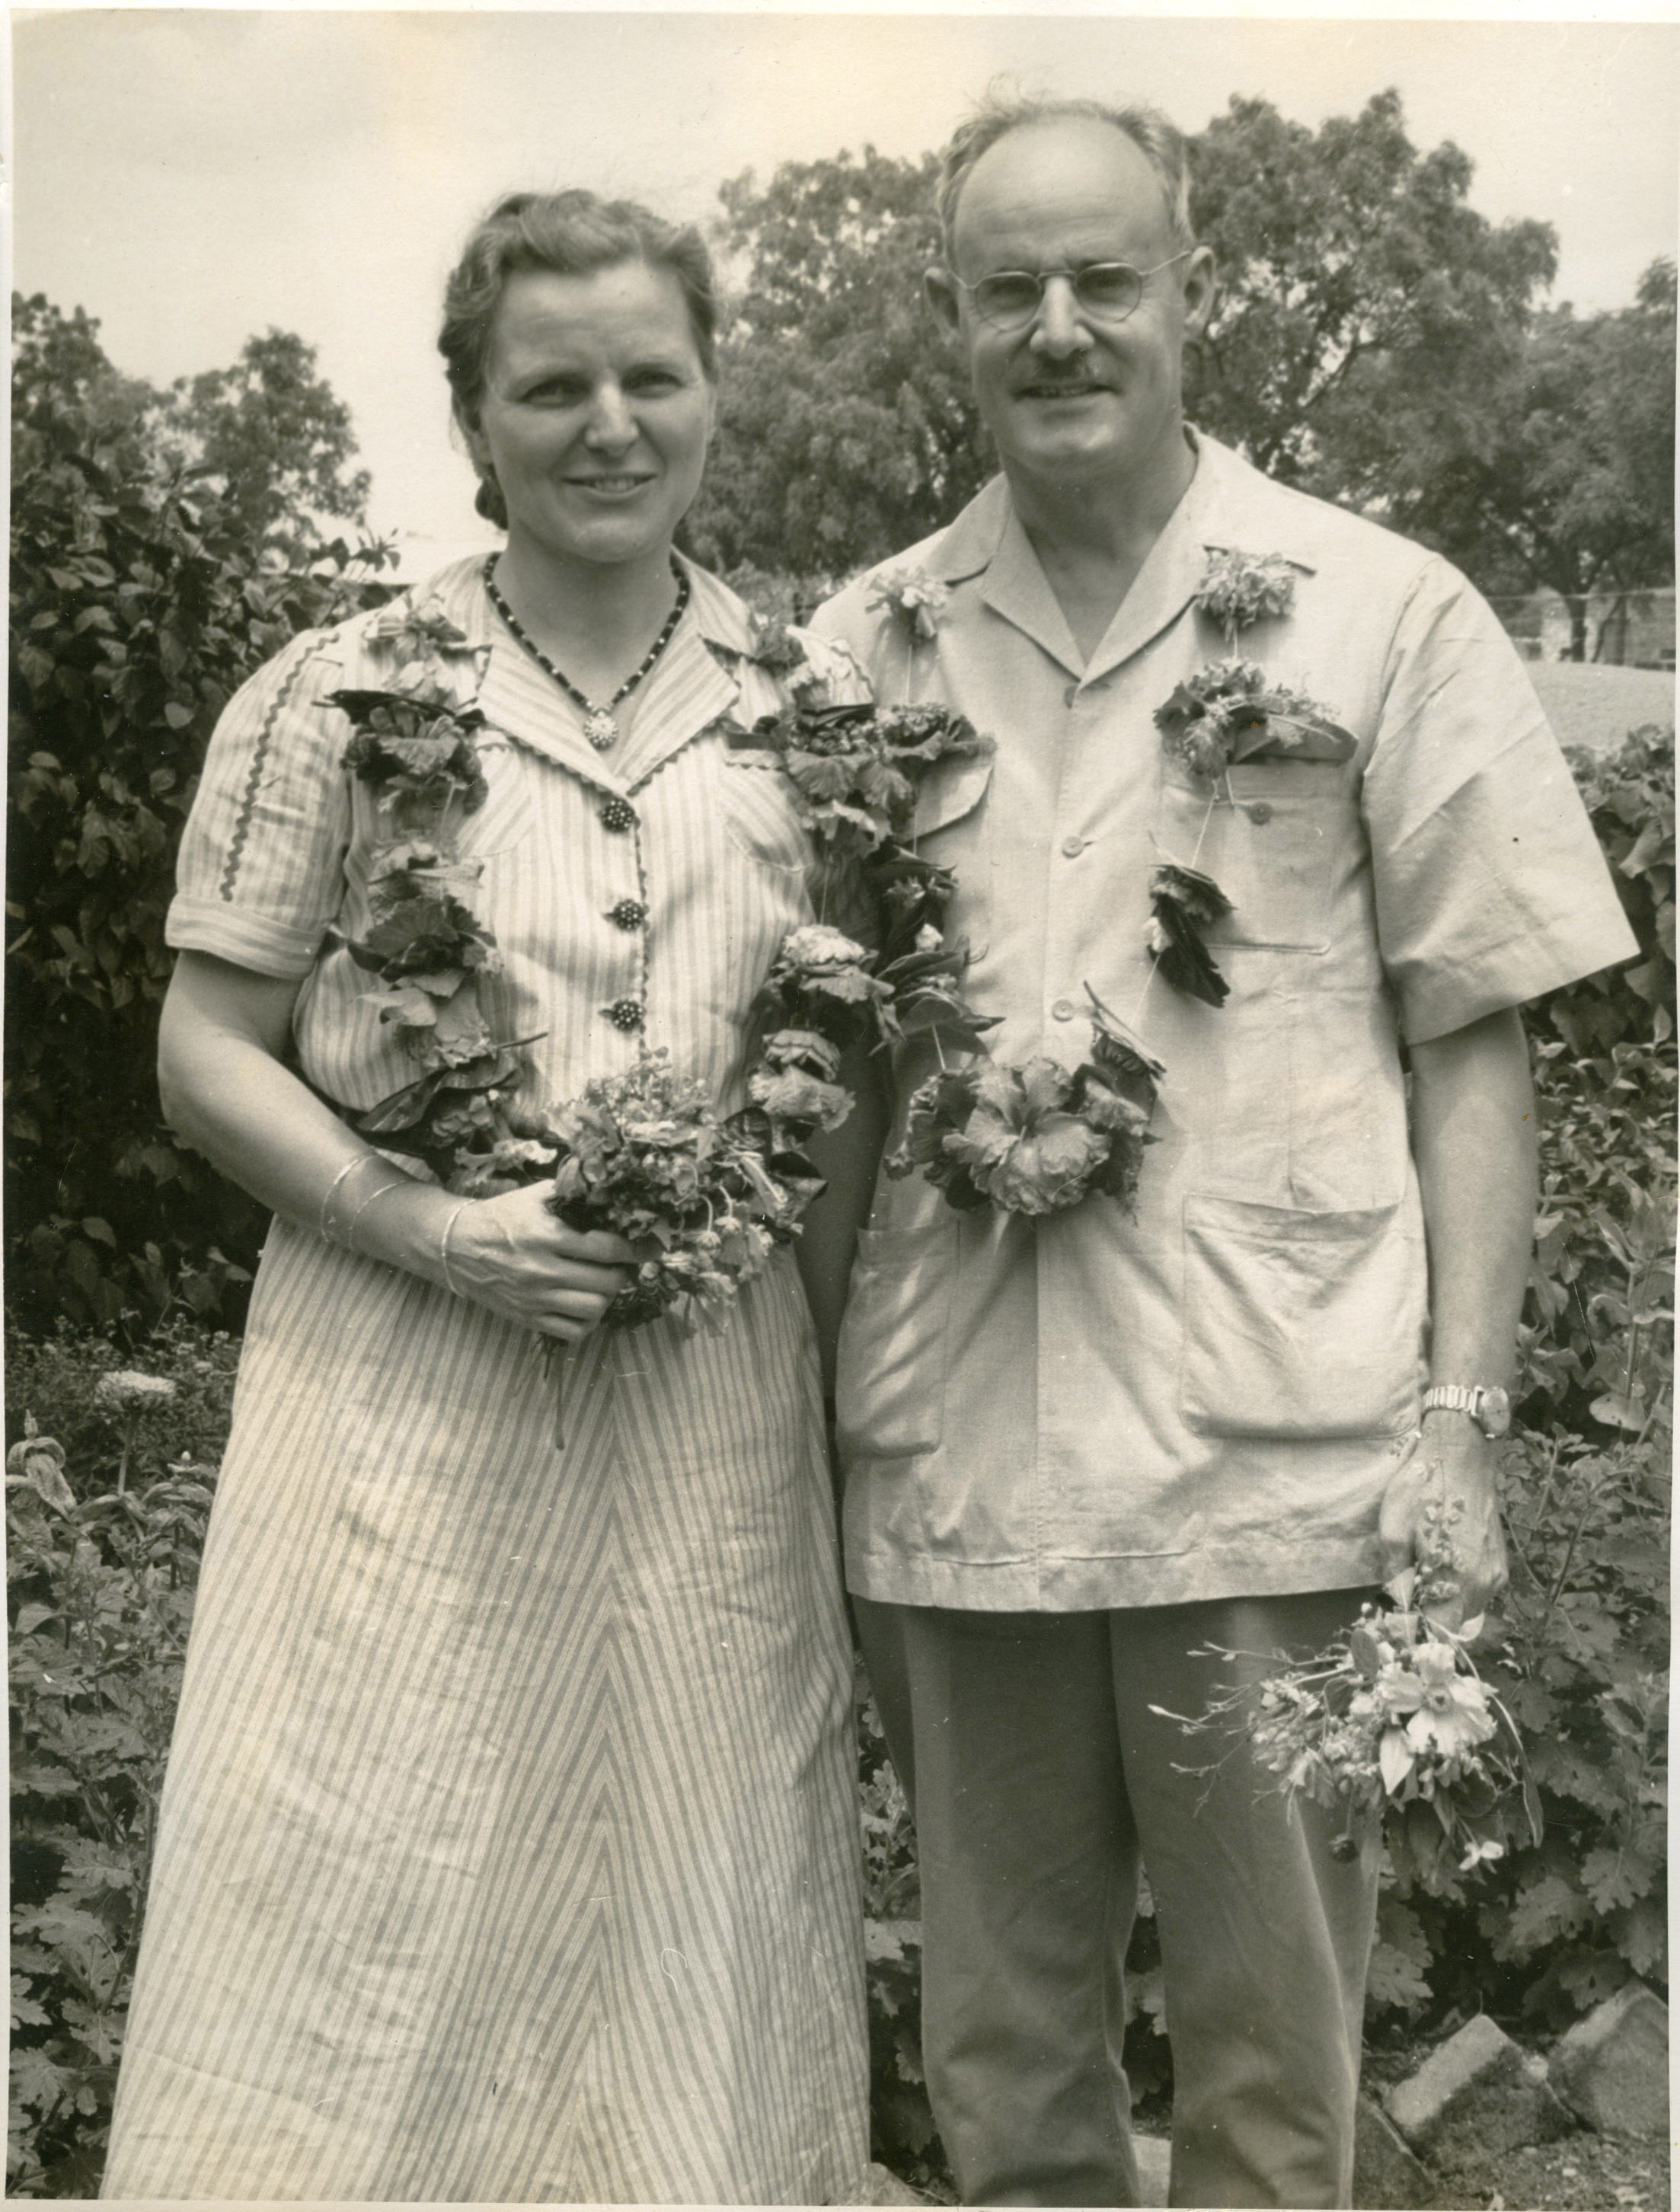 Image of Gifford and Marjorie Towle, 1957